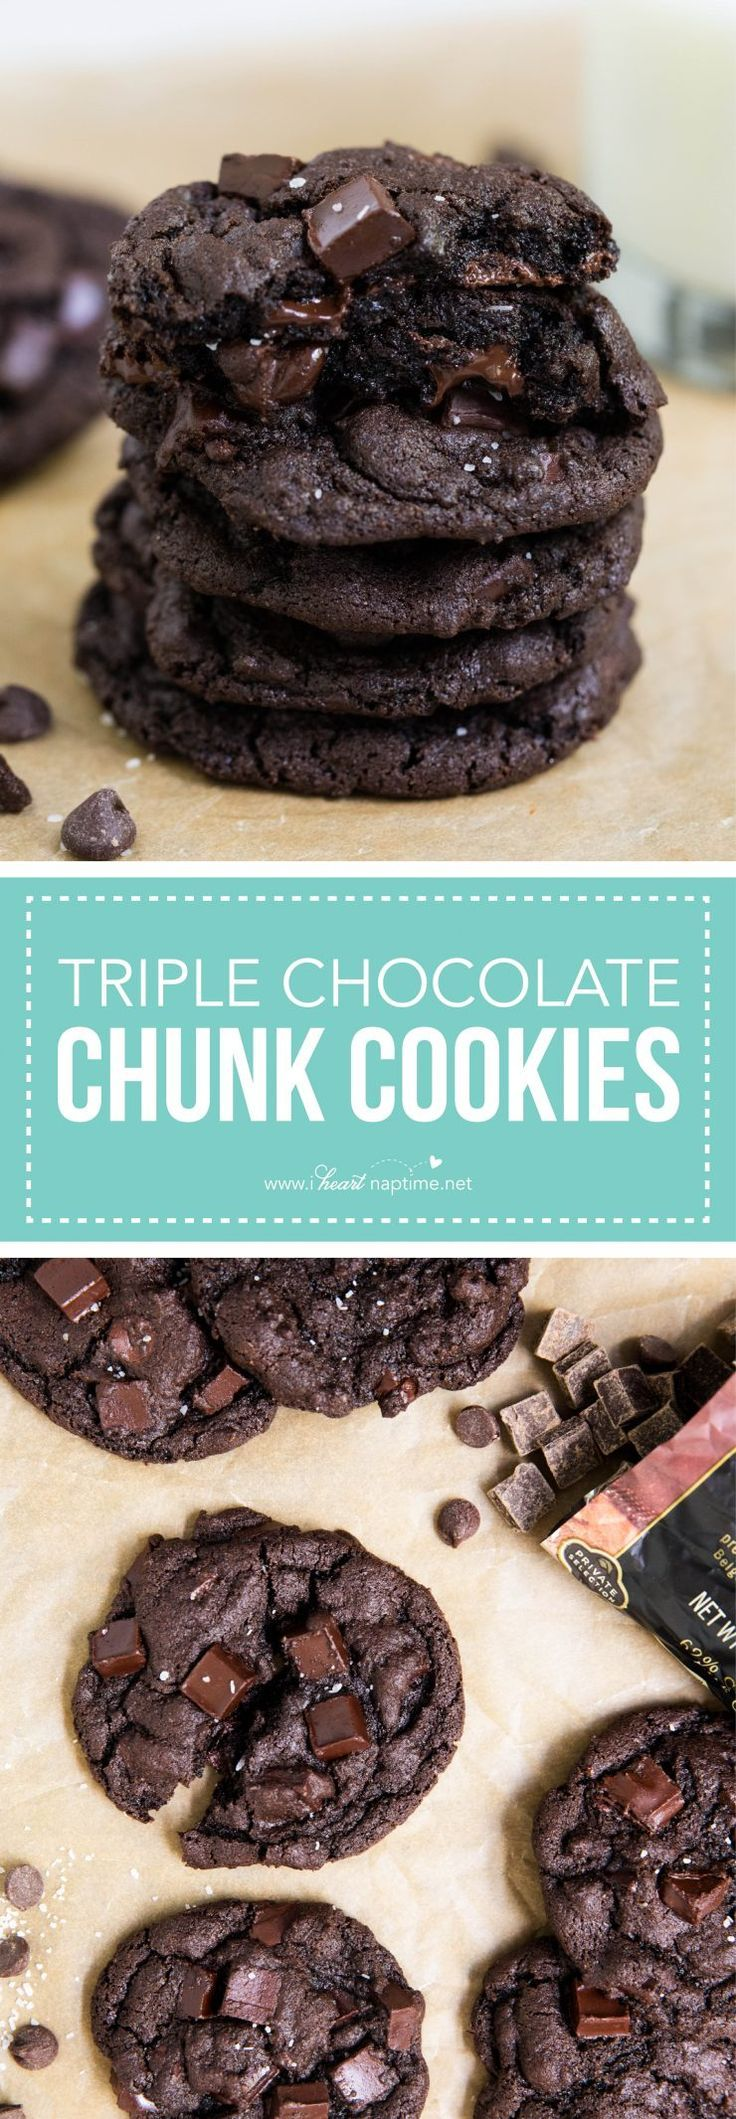 Tripel Chocolate Chunk Cookies